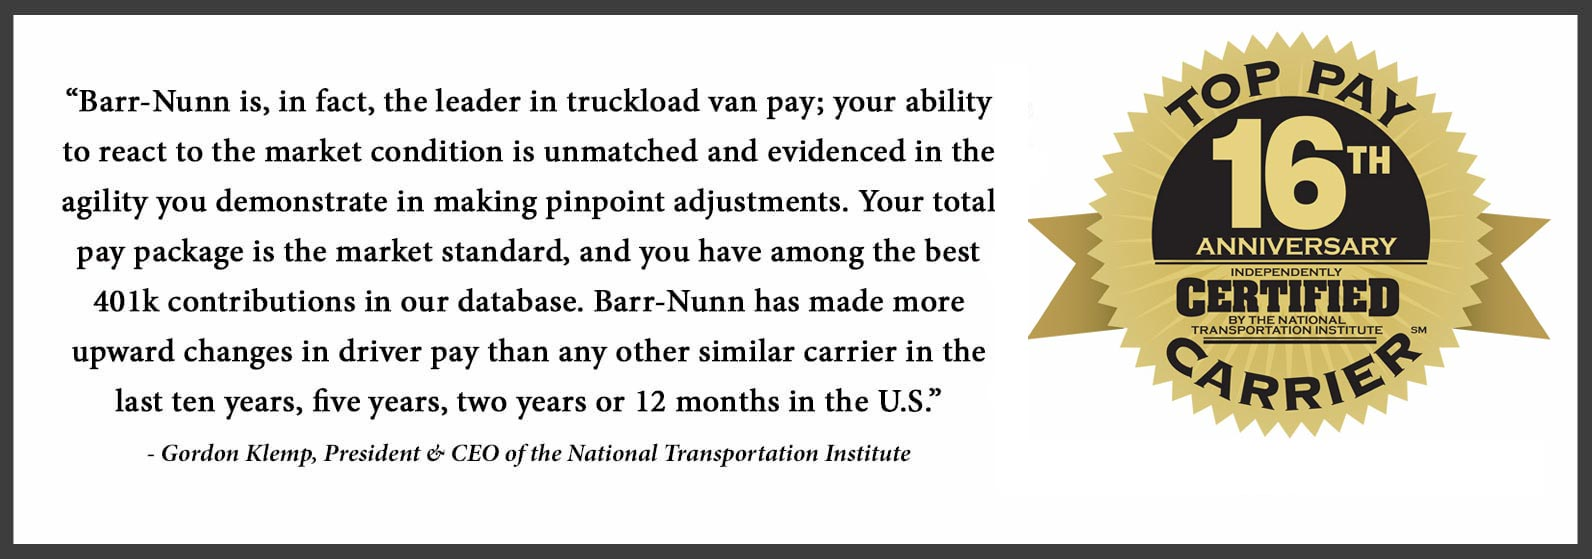 Barr-Nunn is a Certified Top Pay Carrier by the National Transportation Institute